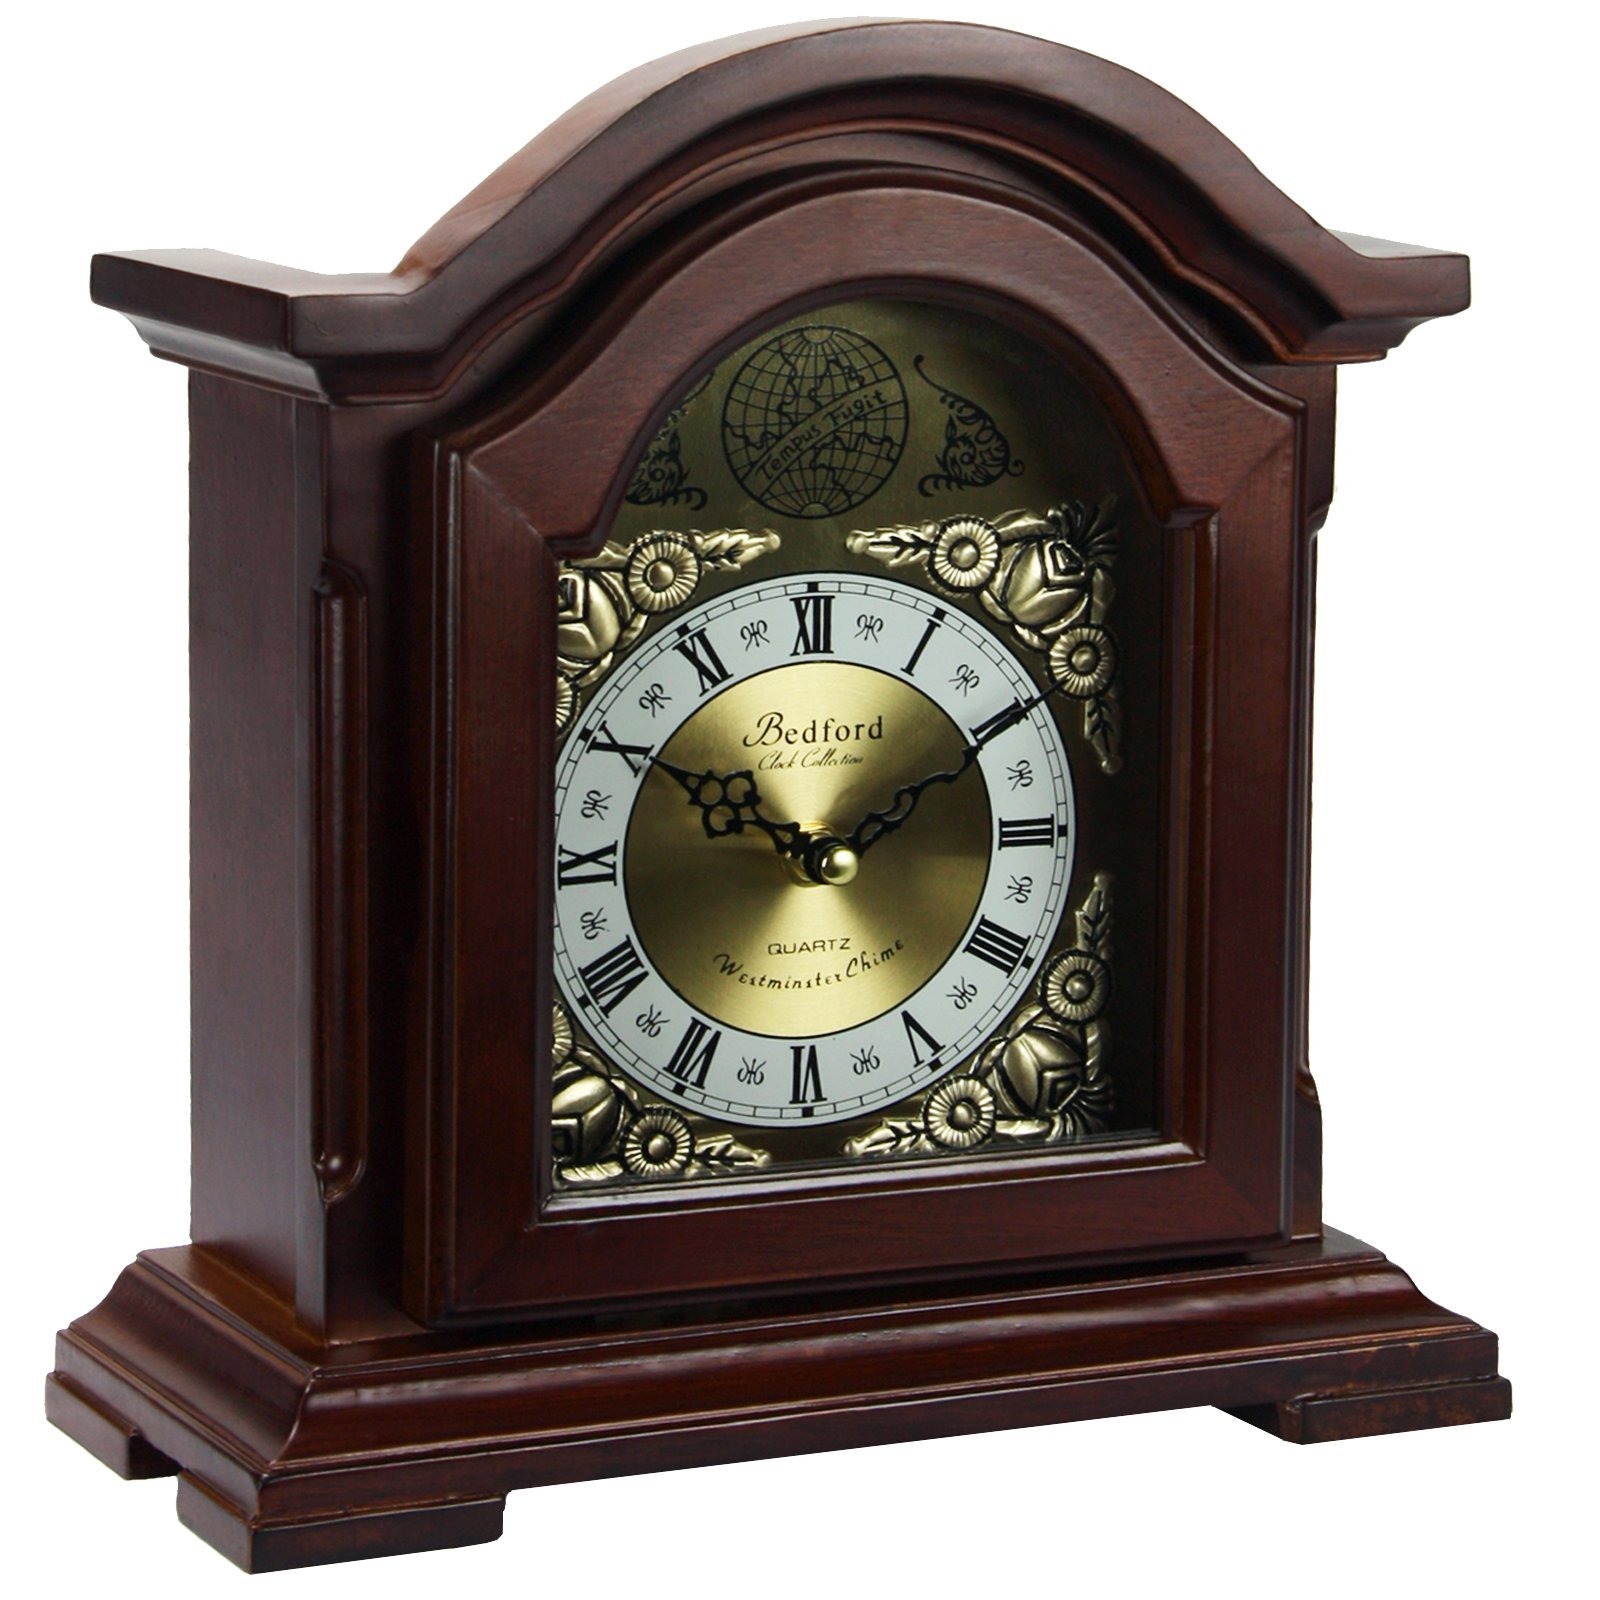 Bedford Clock Collection Redwood Mantel Clock with Chimes by Bedford Clock Collection (Image #1)